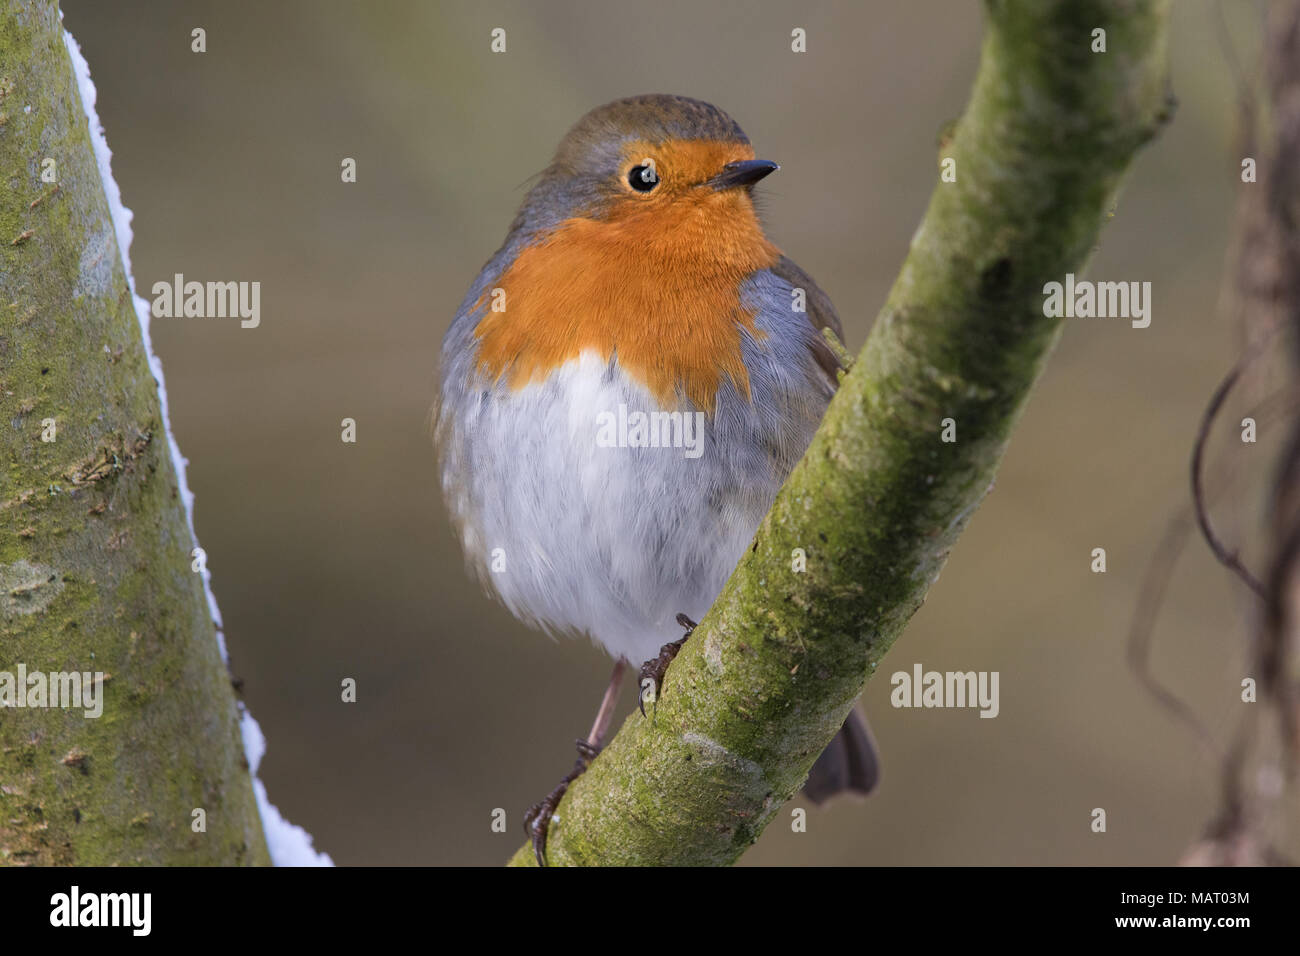 European Robin (Erithacus rubecula) perched on a branch on a snowy winter's day - Stock Image